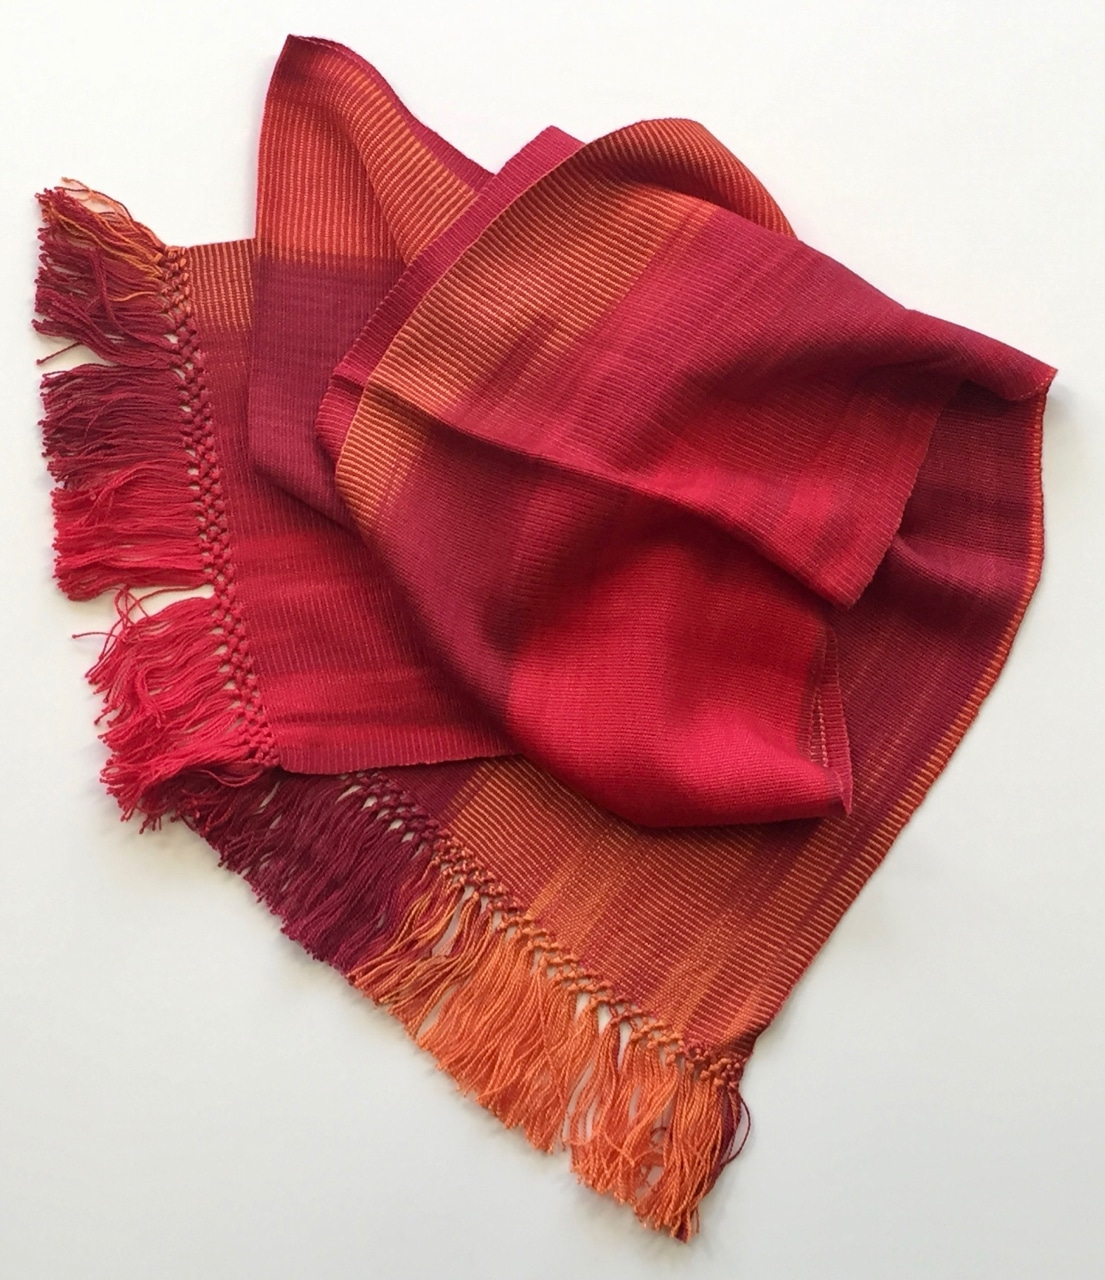 Red, Orange - Lightweight Bamboo Handwoven Scarf 8 x 68